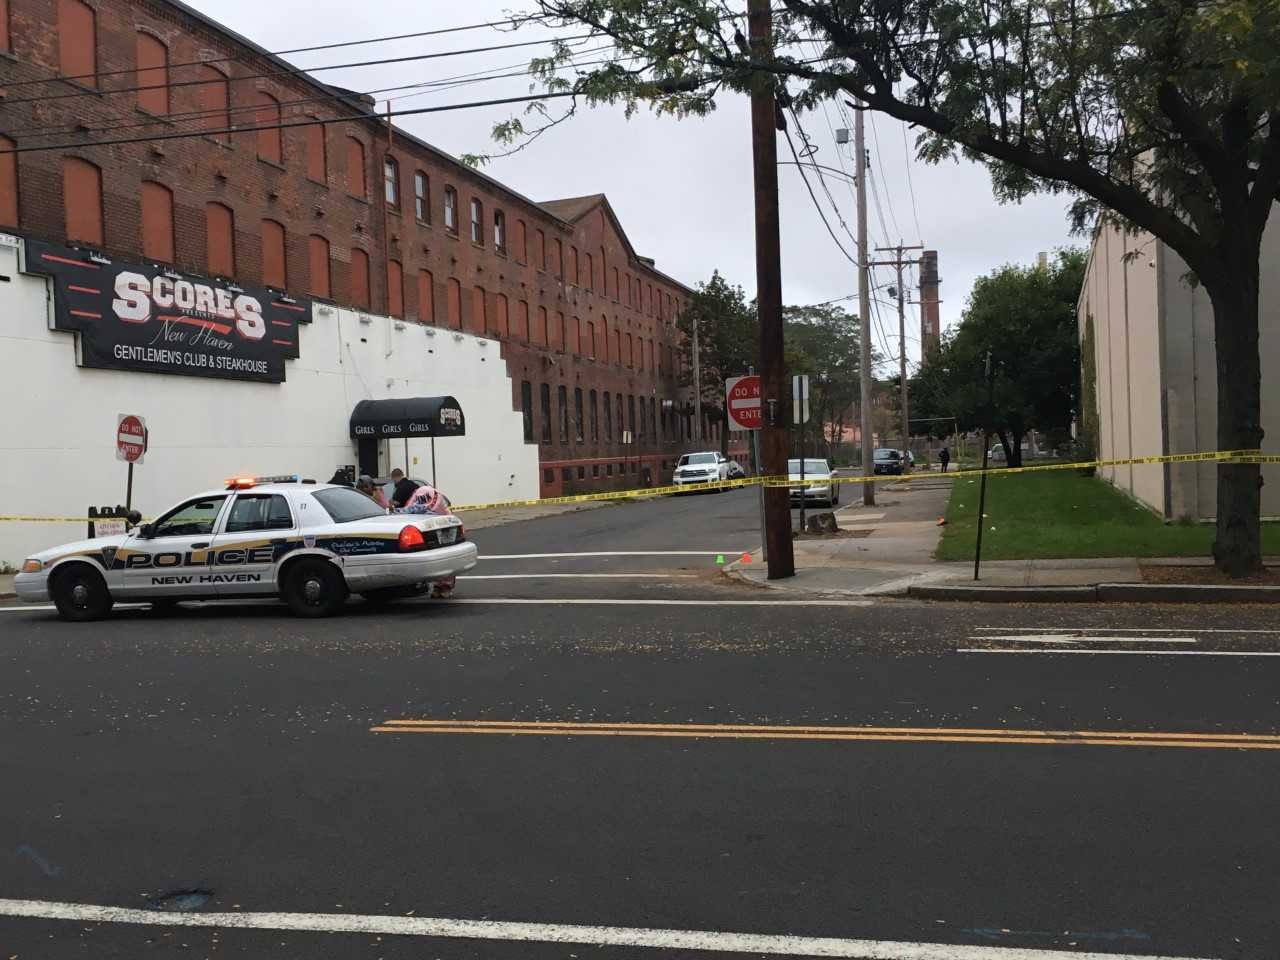 New Haven Police taped off an area of Hamilton Street near the Score's Gentleman's Club